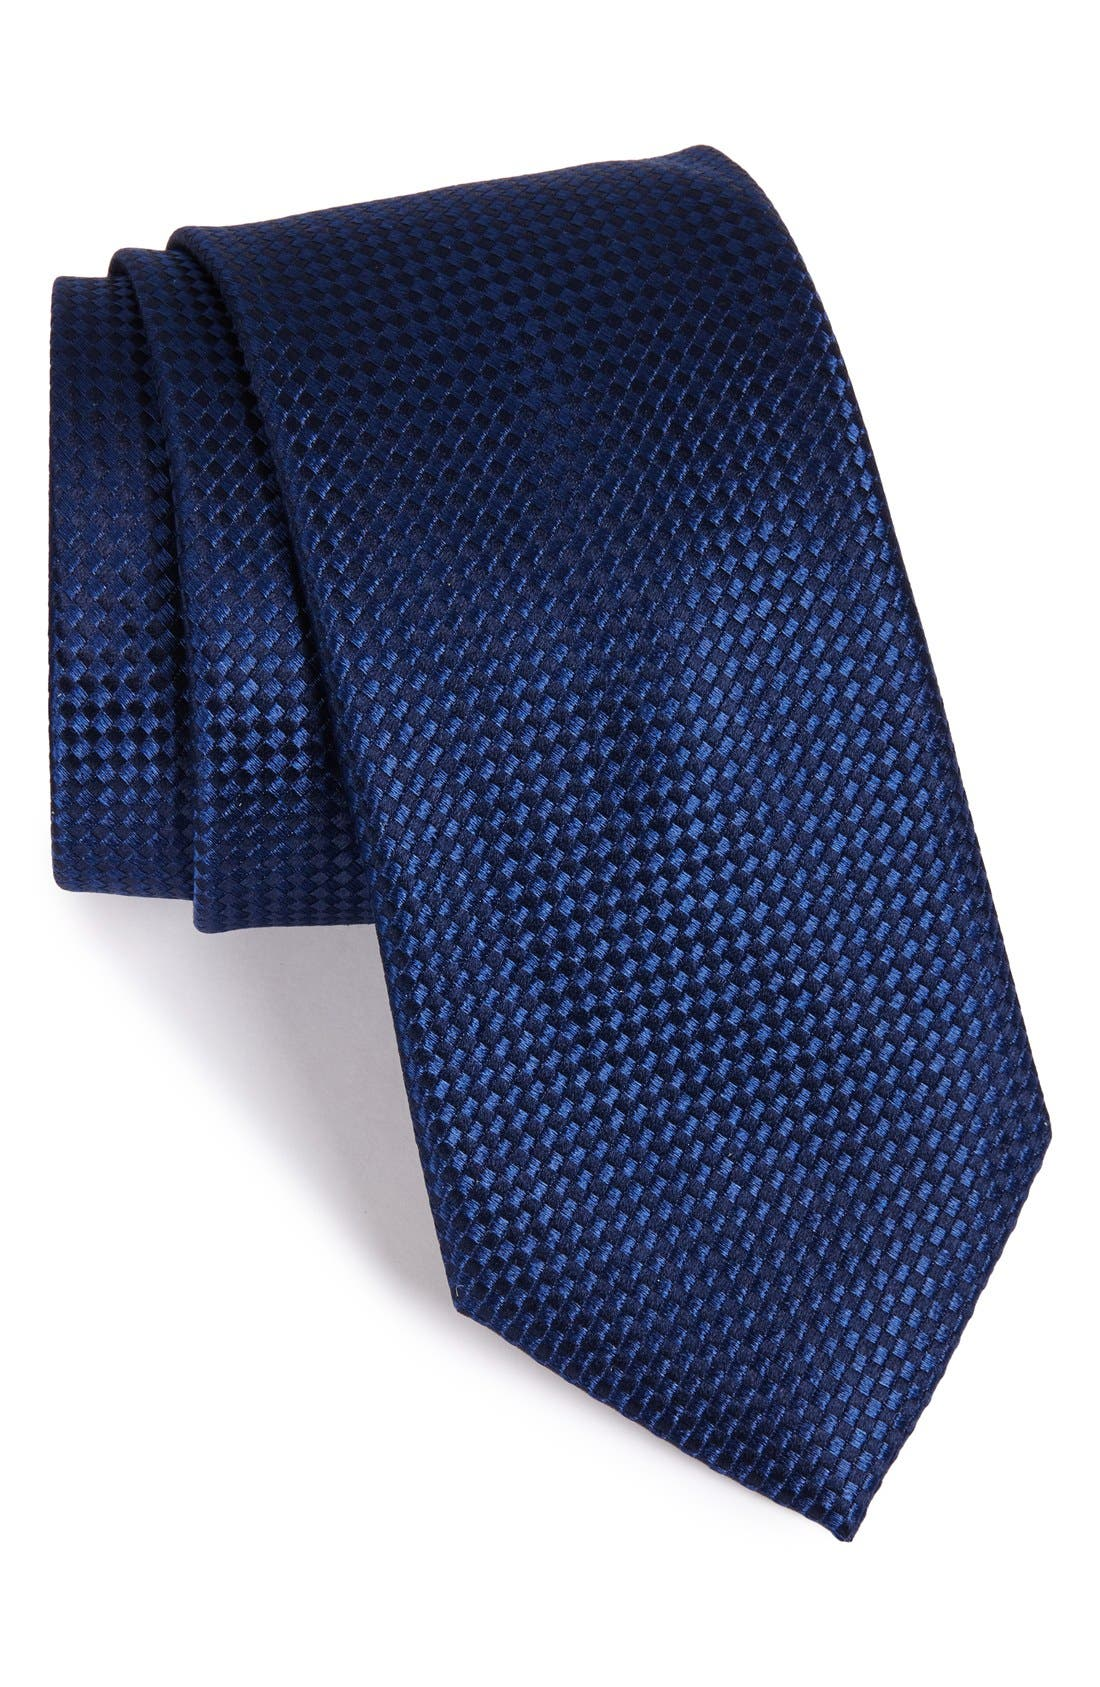 'Nate' Solid Silk Tie,                             Main thumbnail 1, color,                             Navy